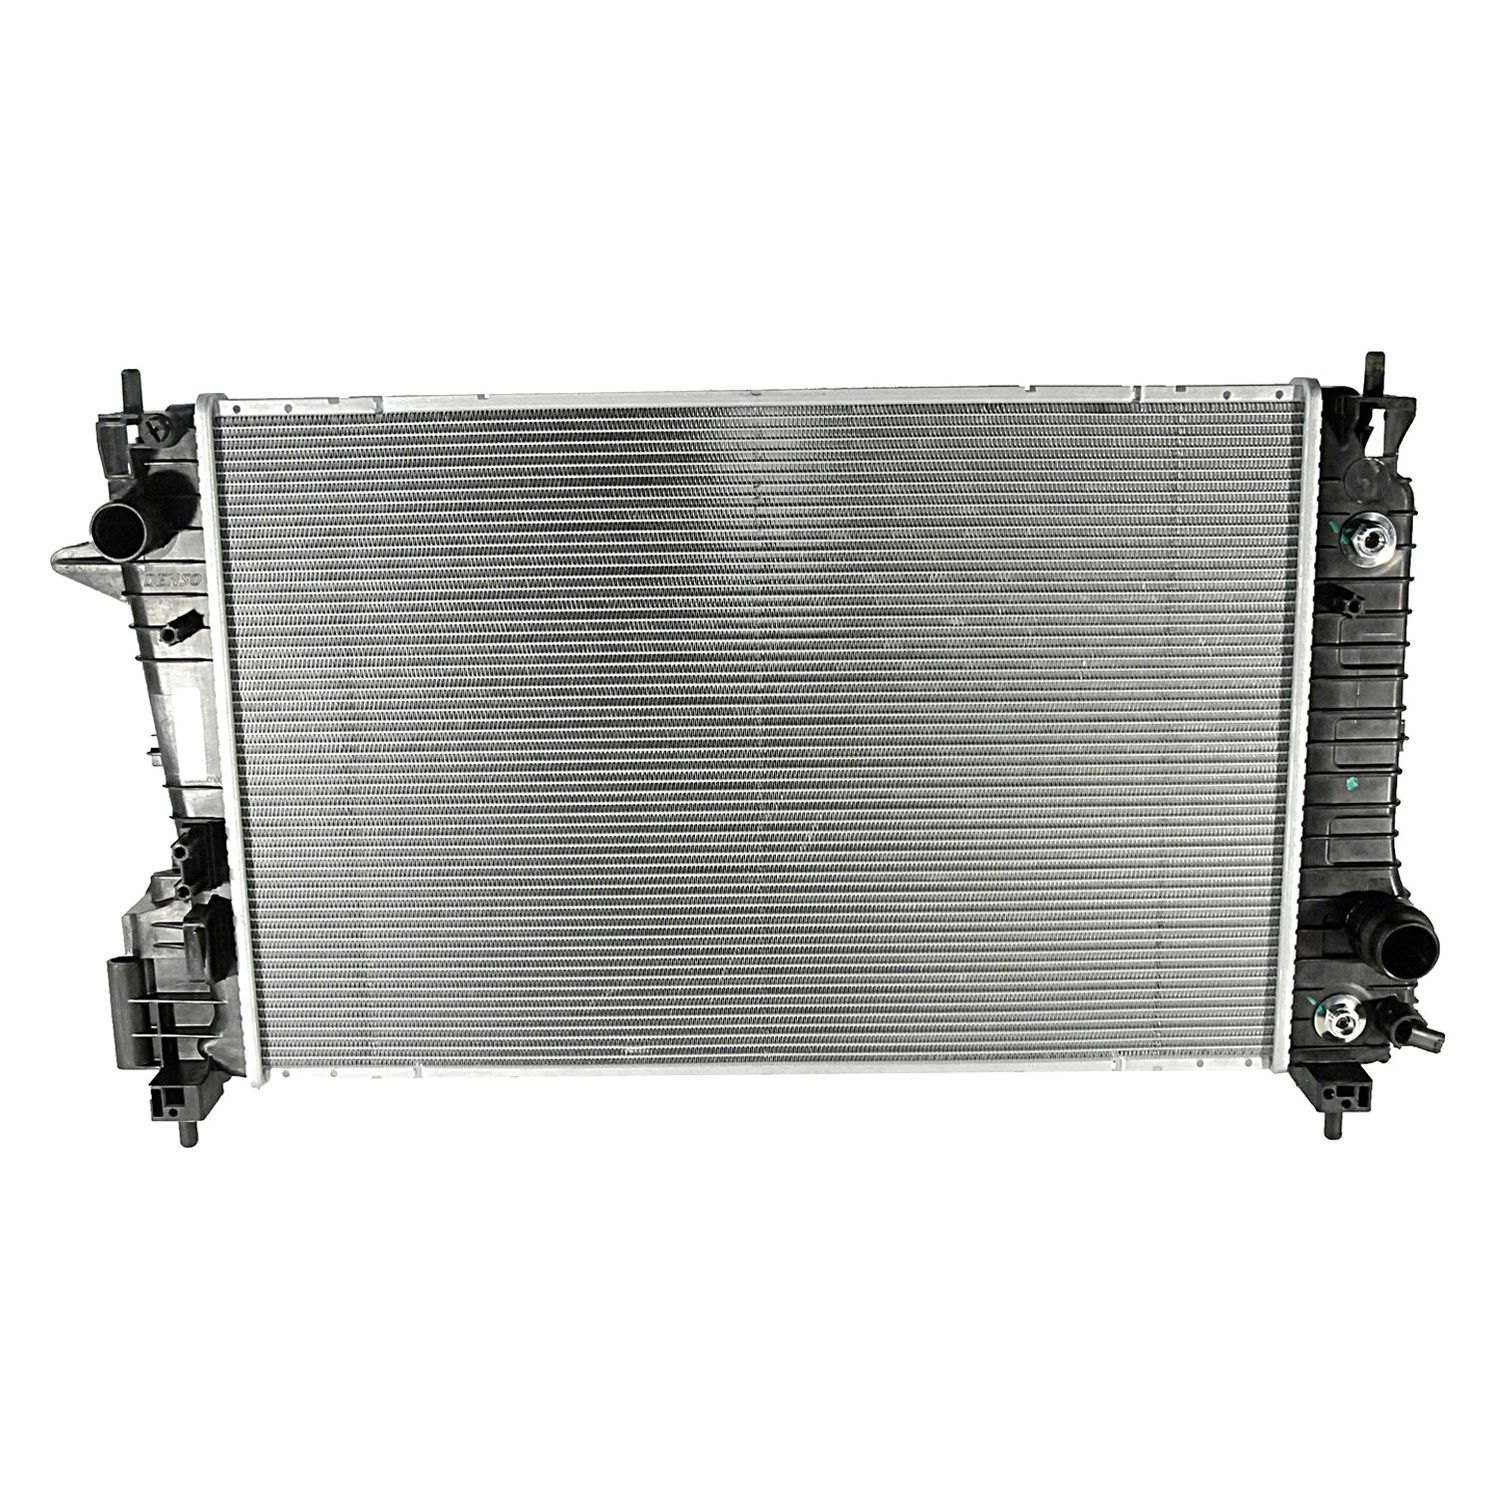 Acdelco chevy sonic gm original equipment™ radiator